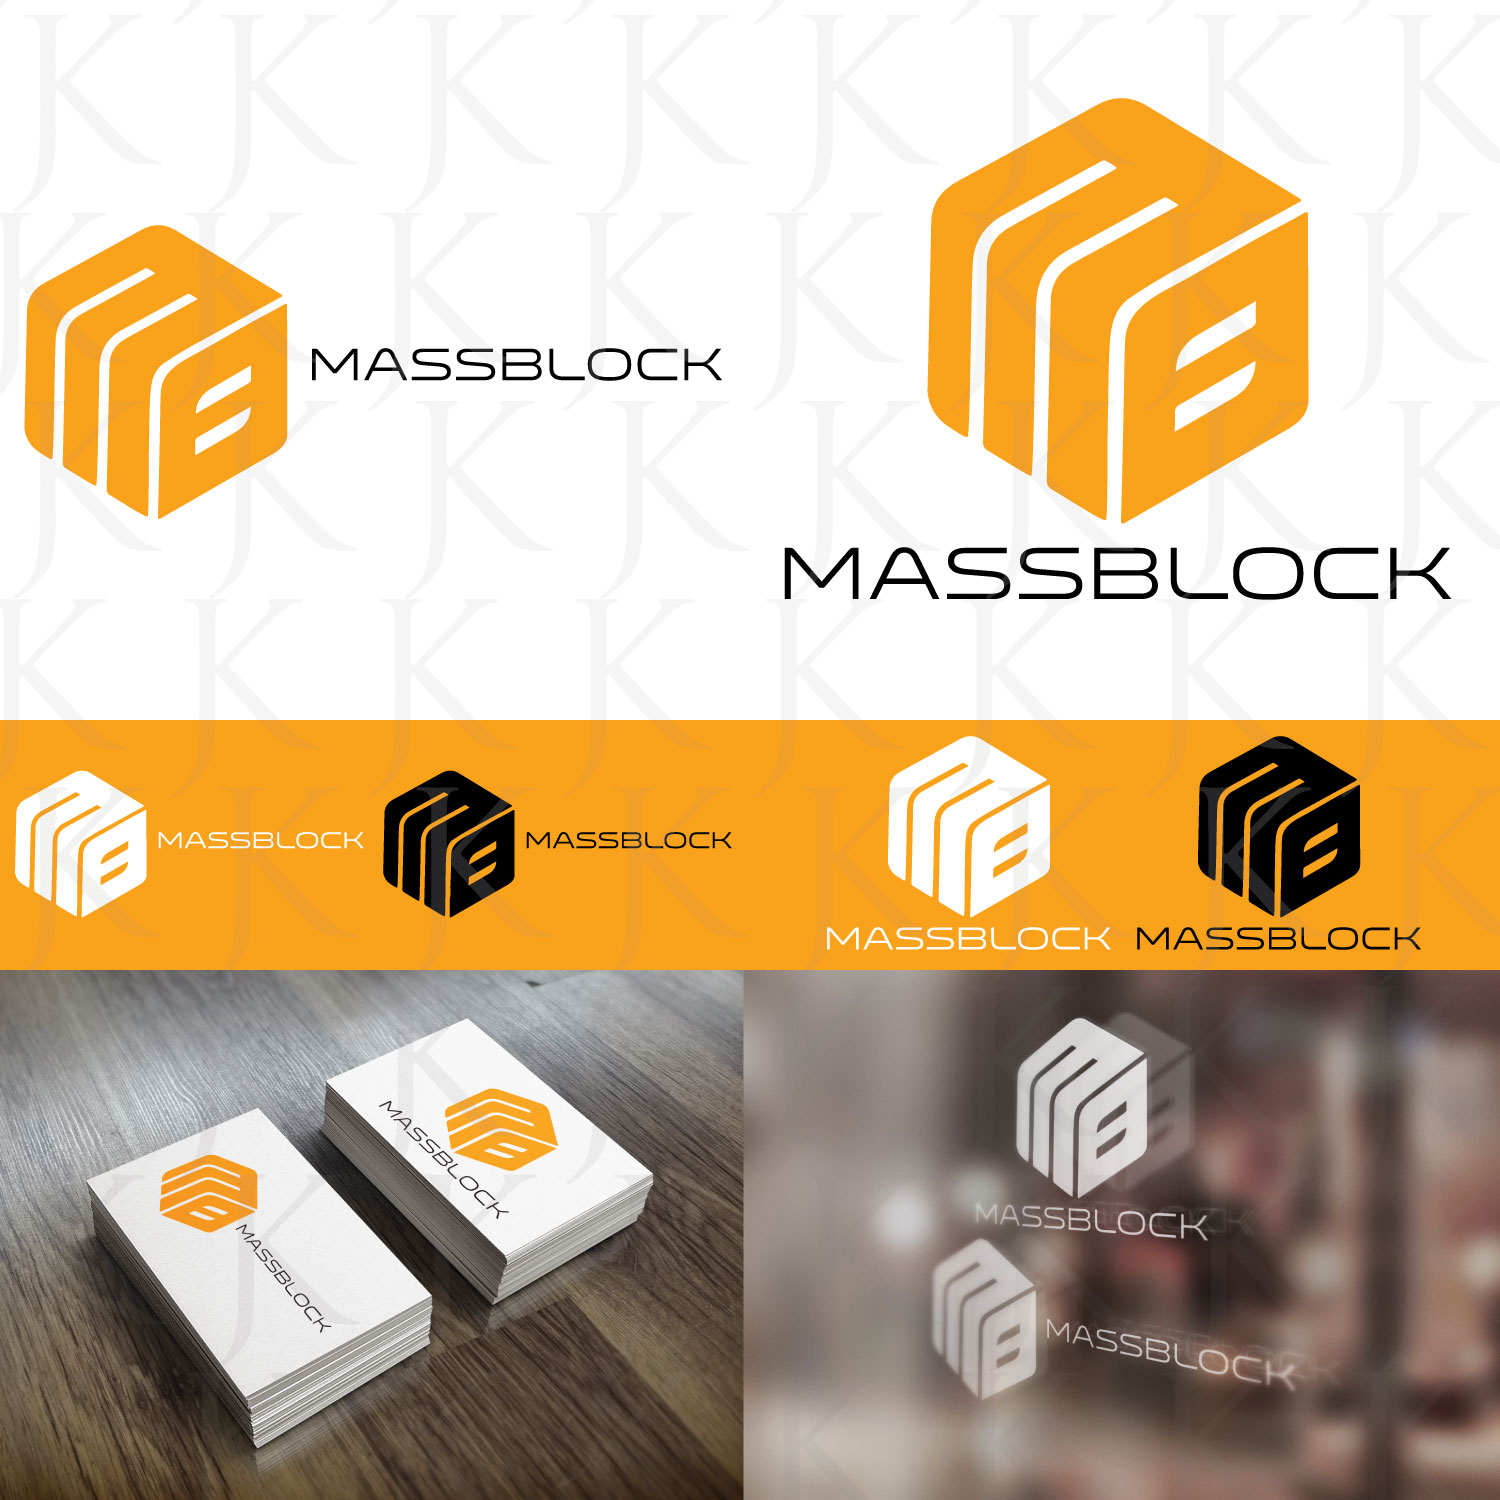 Logo Design by Jeremy Kua - Entry No. 161 in the Logo Design Contest Fun Logo Design for Massblock.